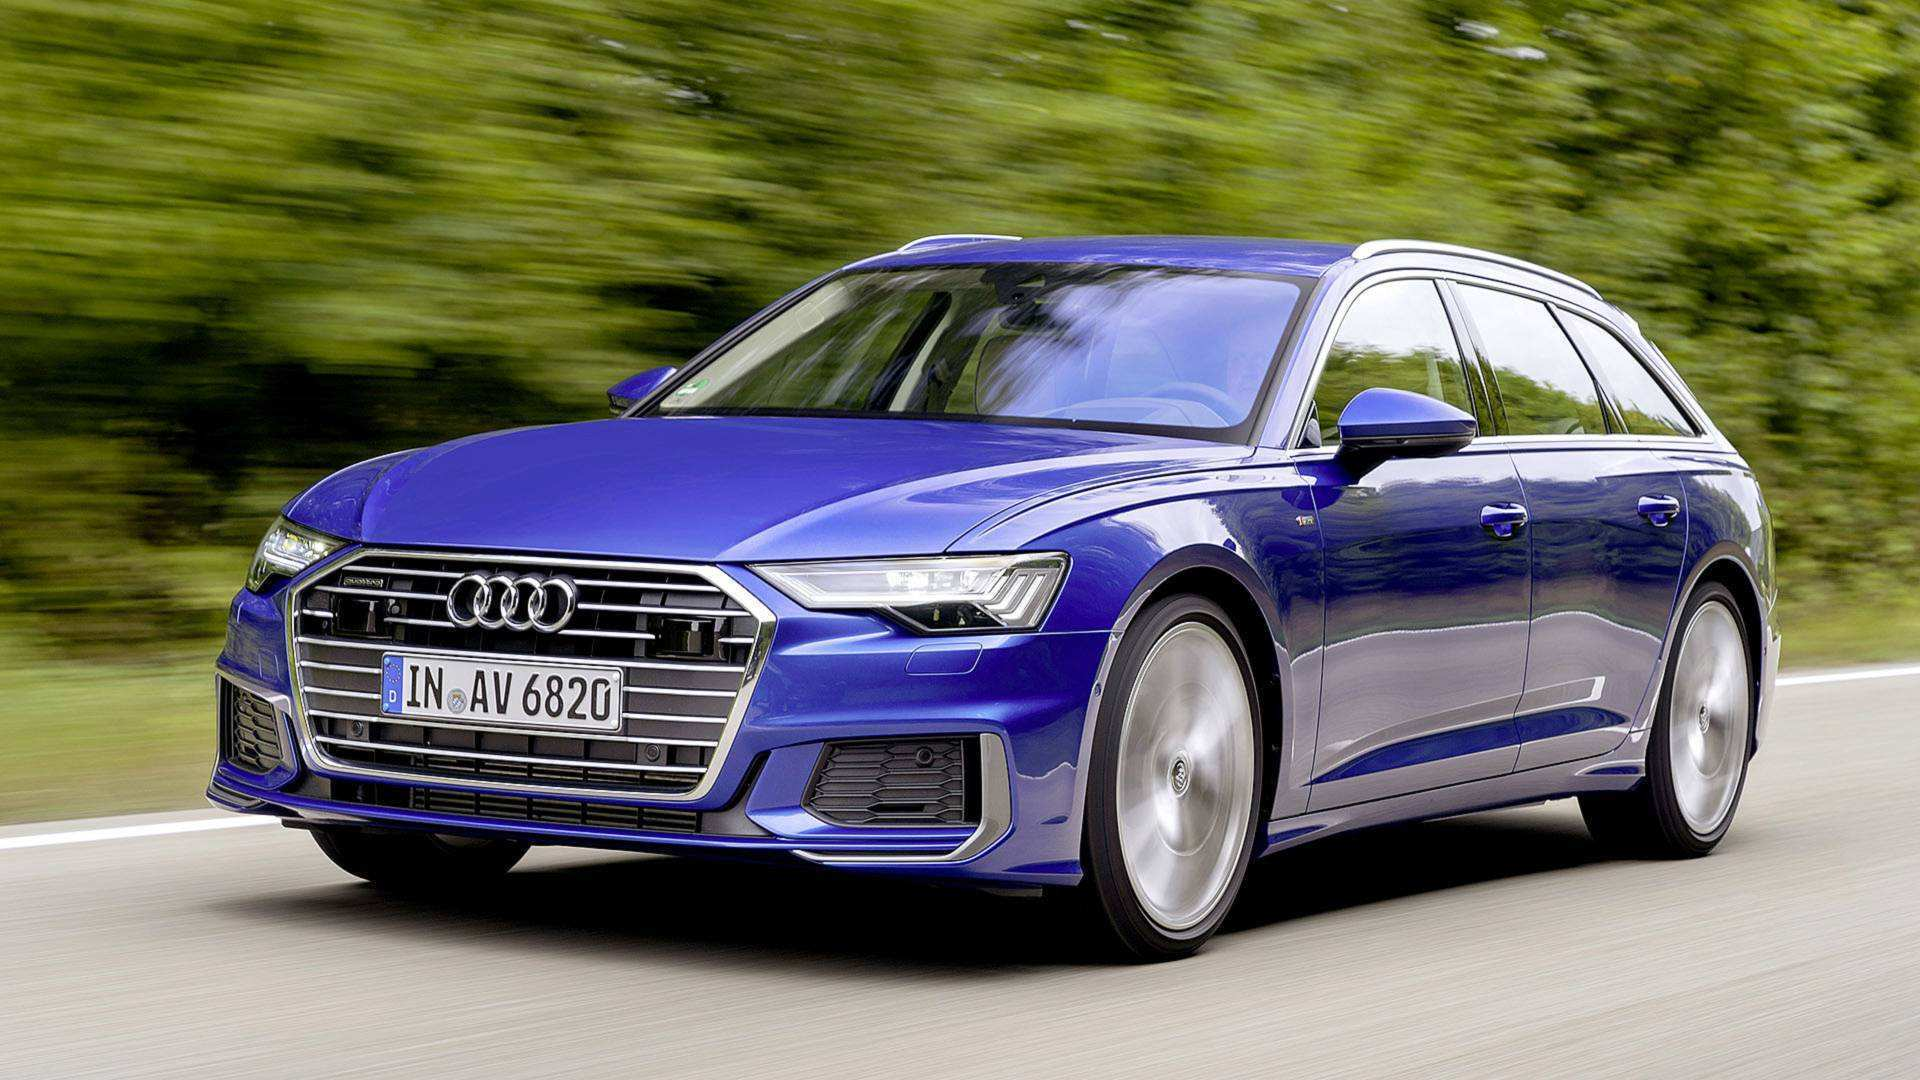 78 The Best 2019 Audi A6 Comes New Review